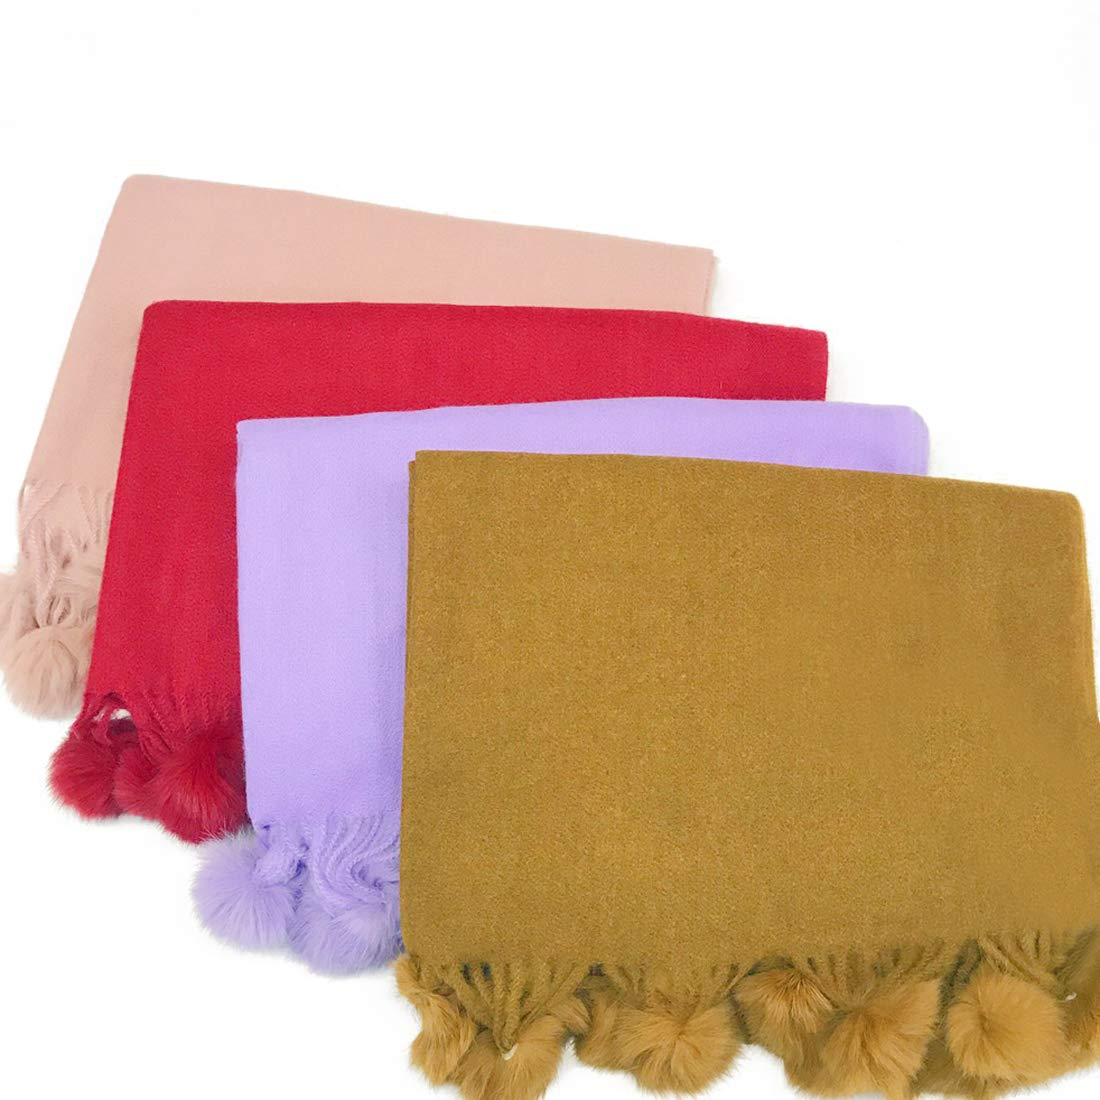 2019 girl/'s autumn winter rabbit hair ball scarf female fresh cashmere warm gift pure colored scarf